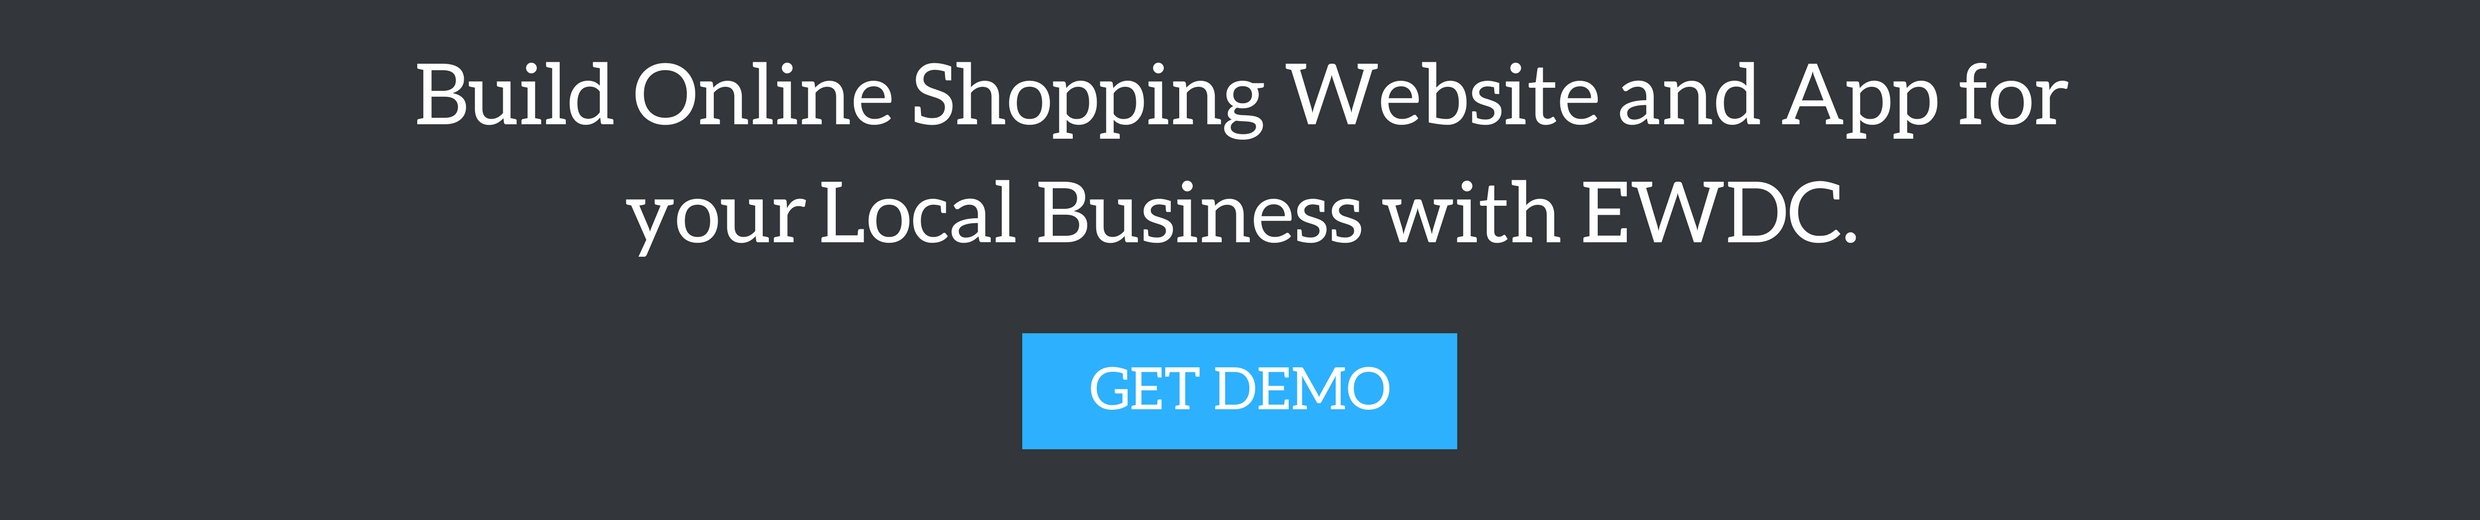 Build Online Website and App for your Local Business